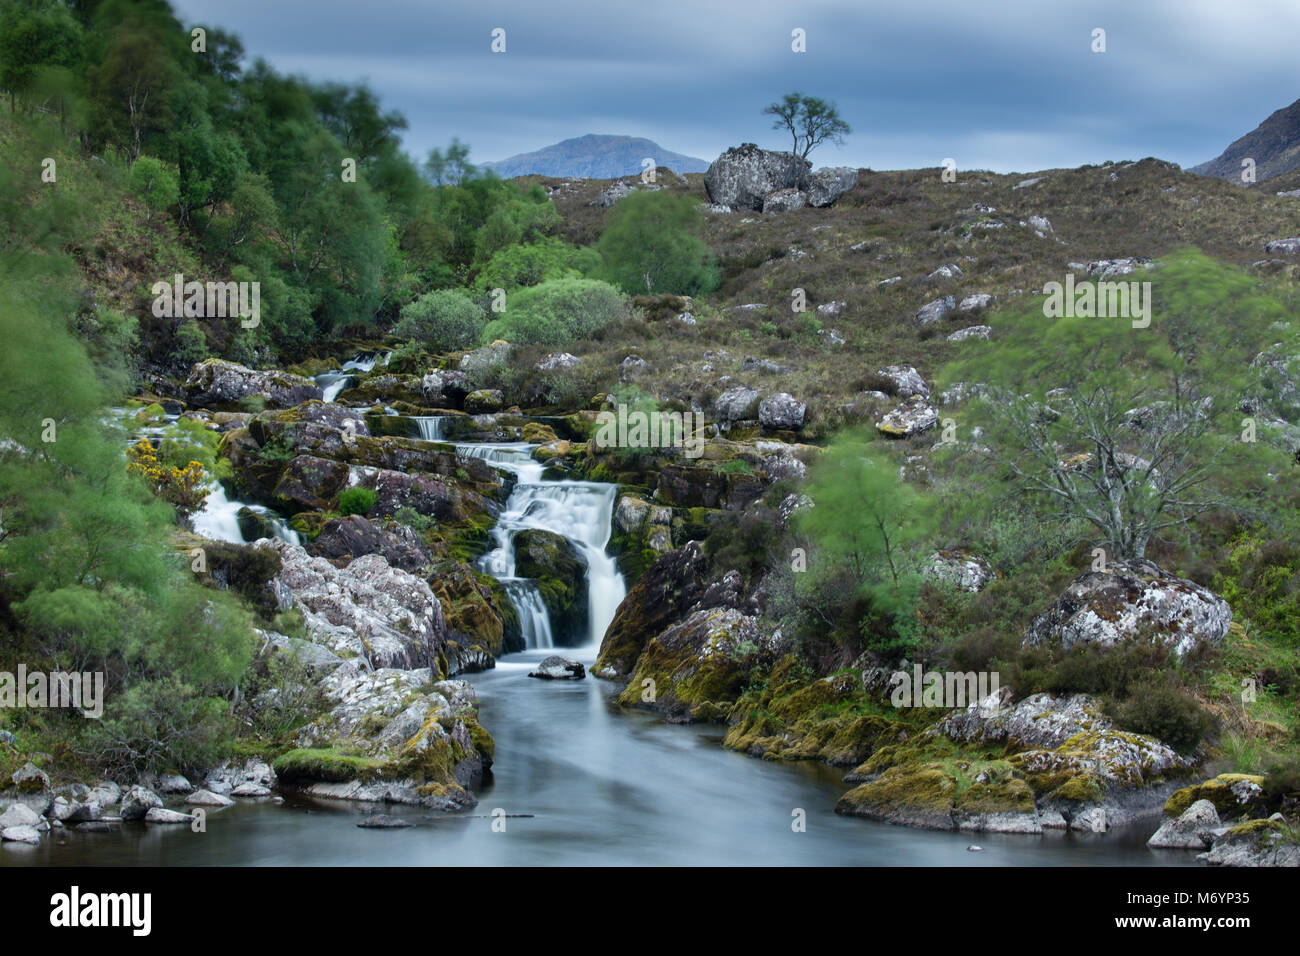 The Falls of Balgy, Loch Torridon, Wester Ross, Scotland, UK - Stock Image